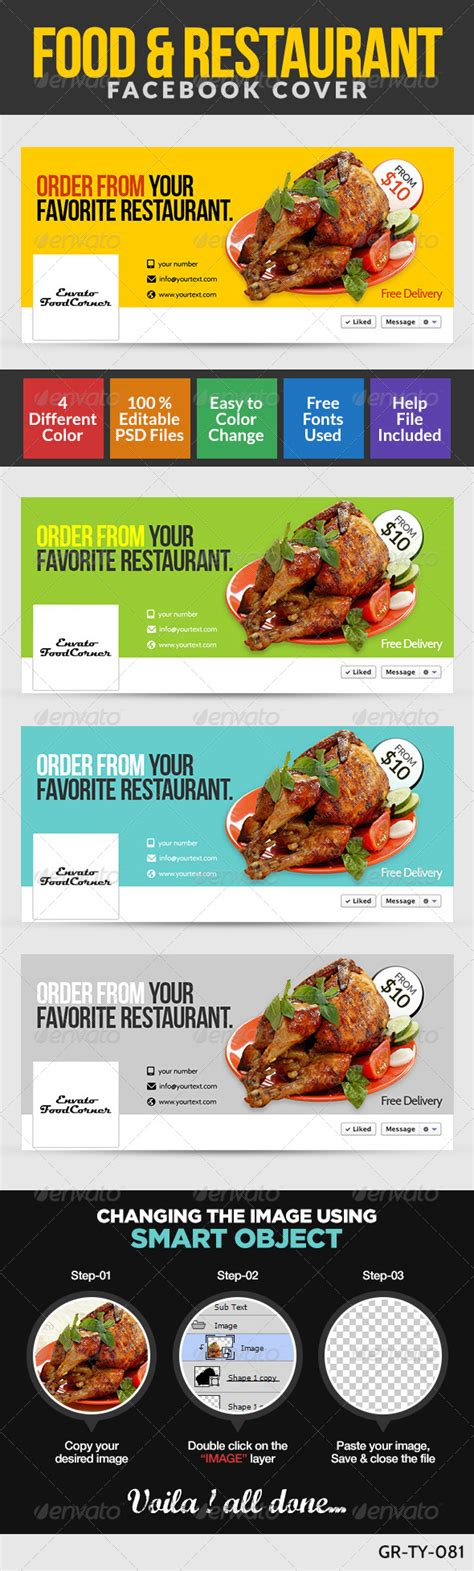 food banner template restaurant food cover page restaurant food